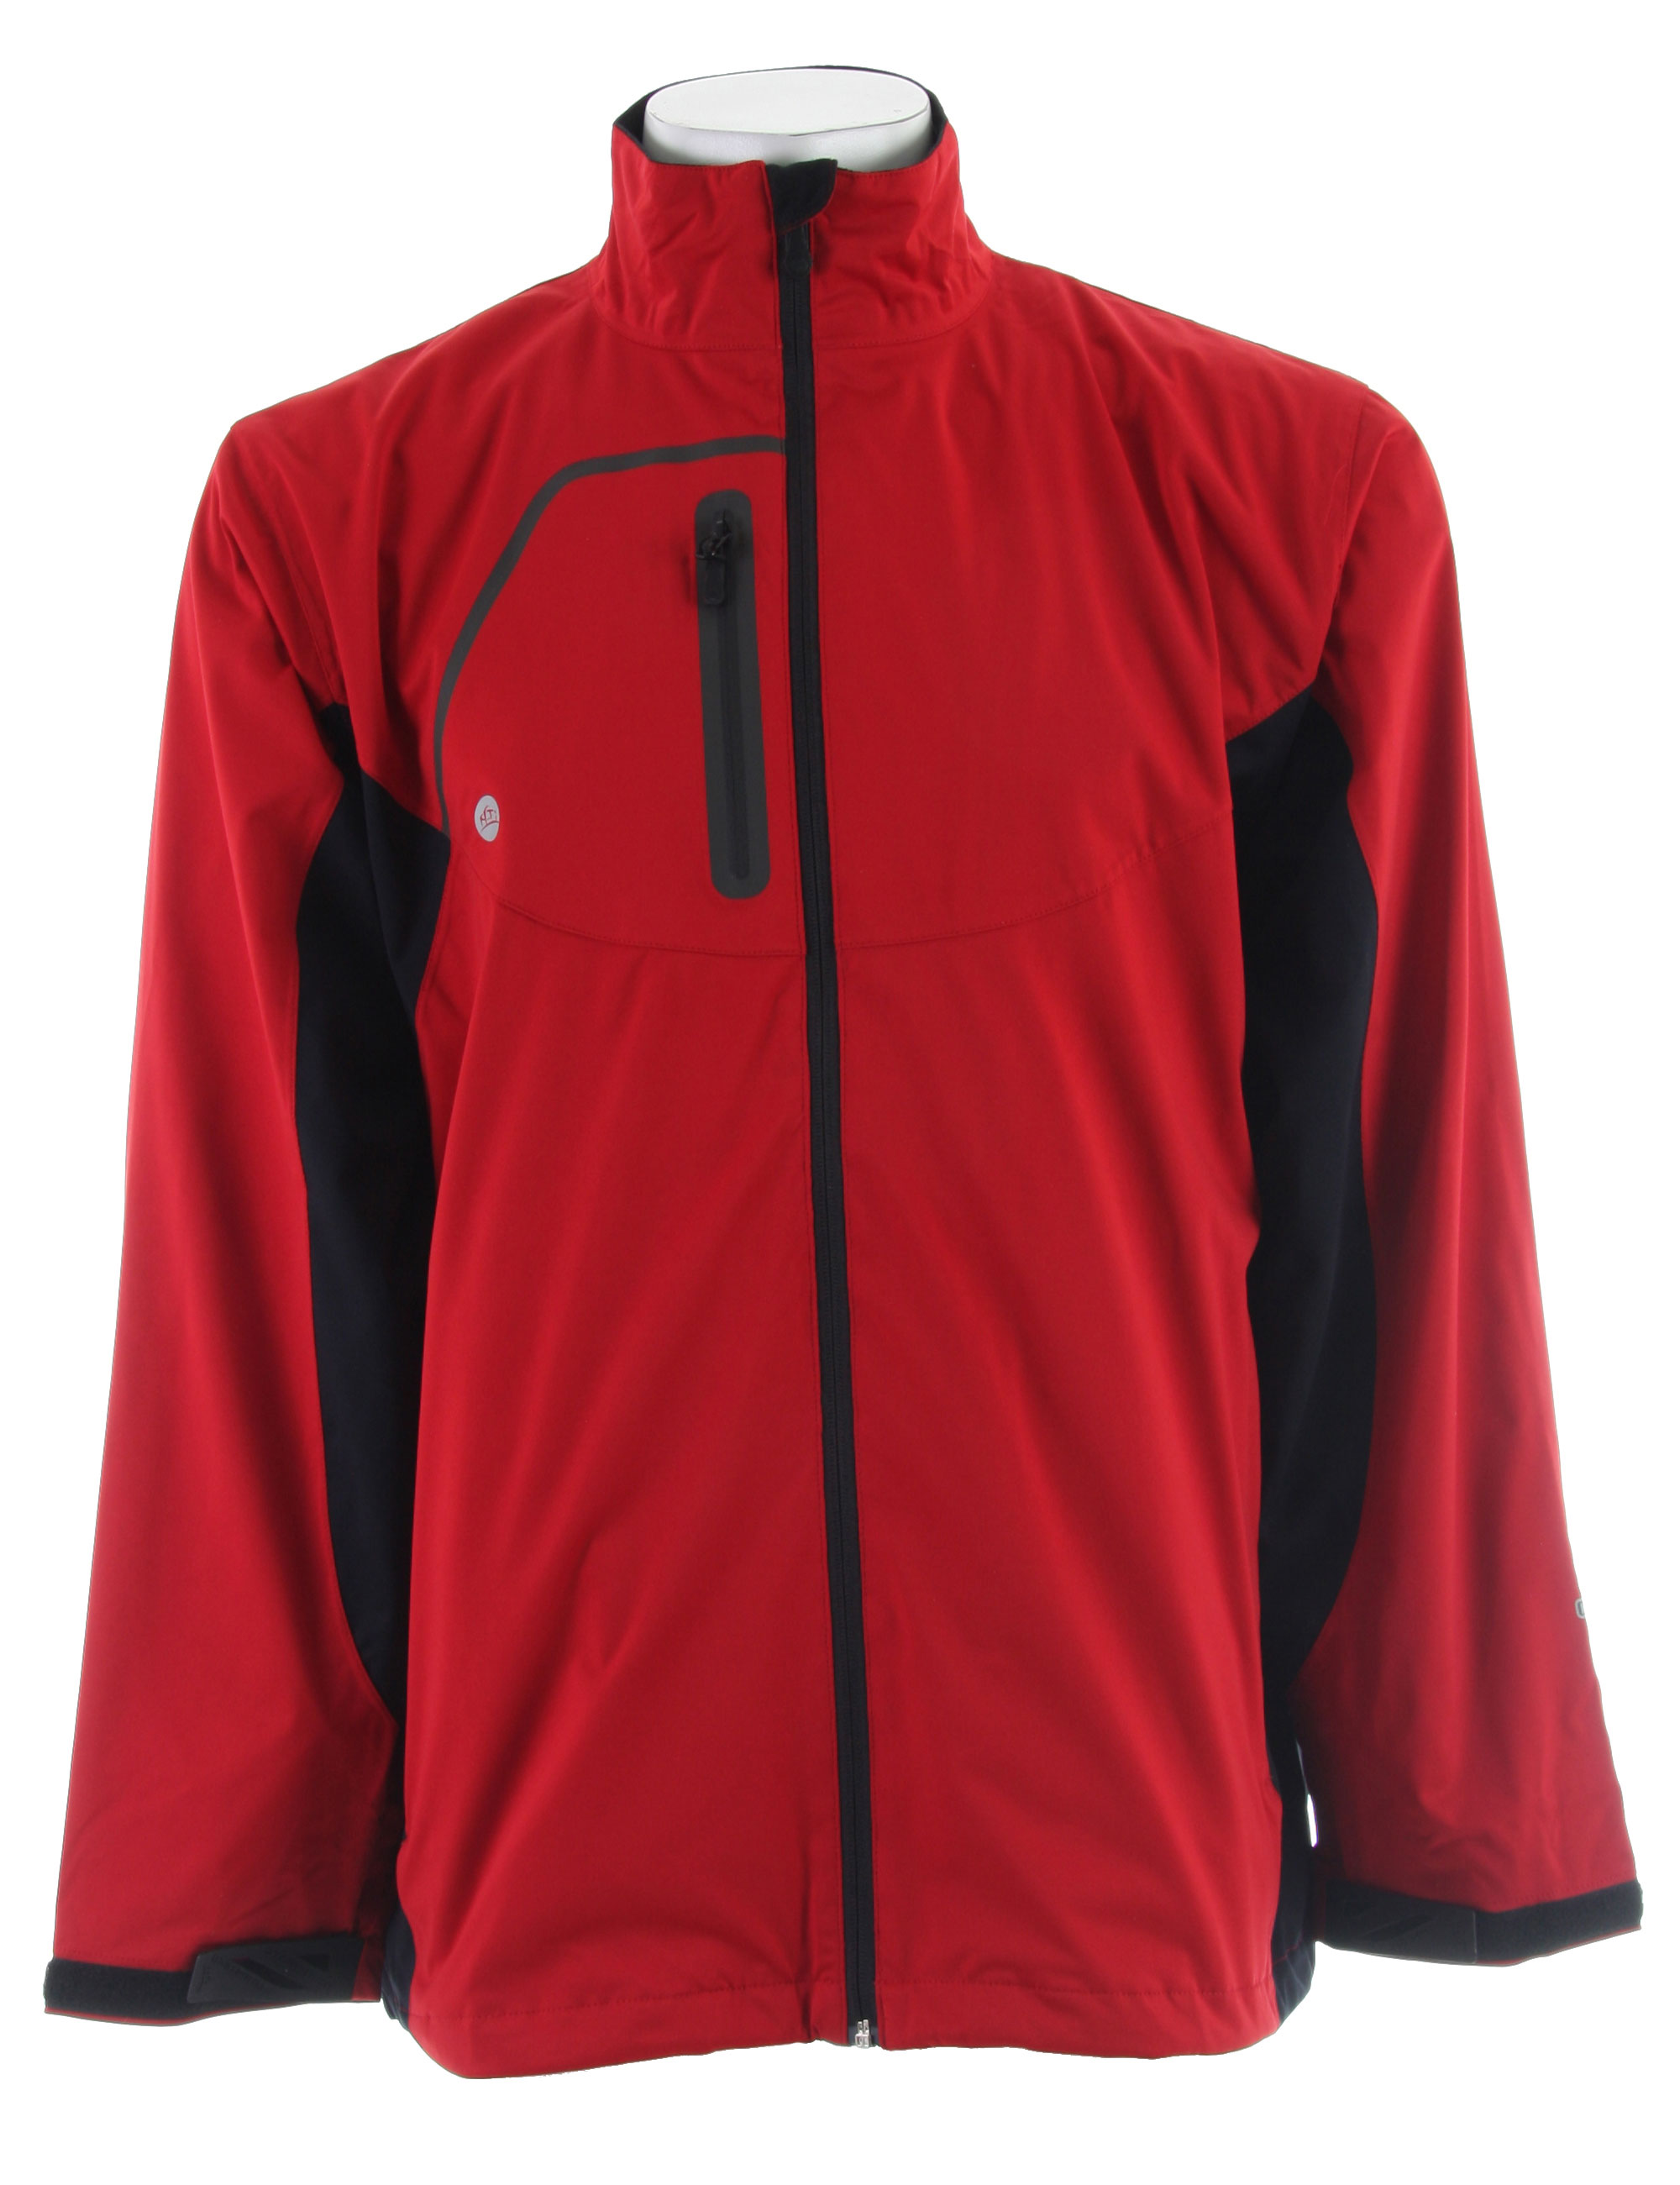 Stormtech Trident Microflex Storm Shell Jacket Red/Black - $44.95